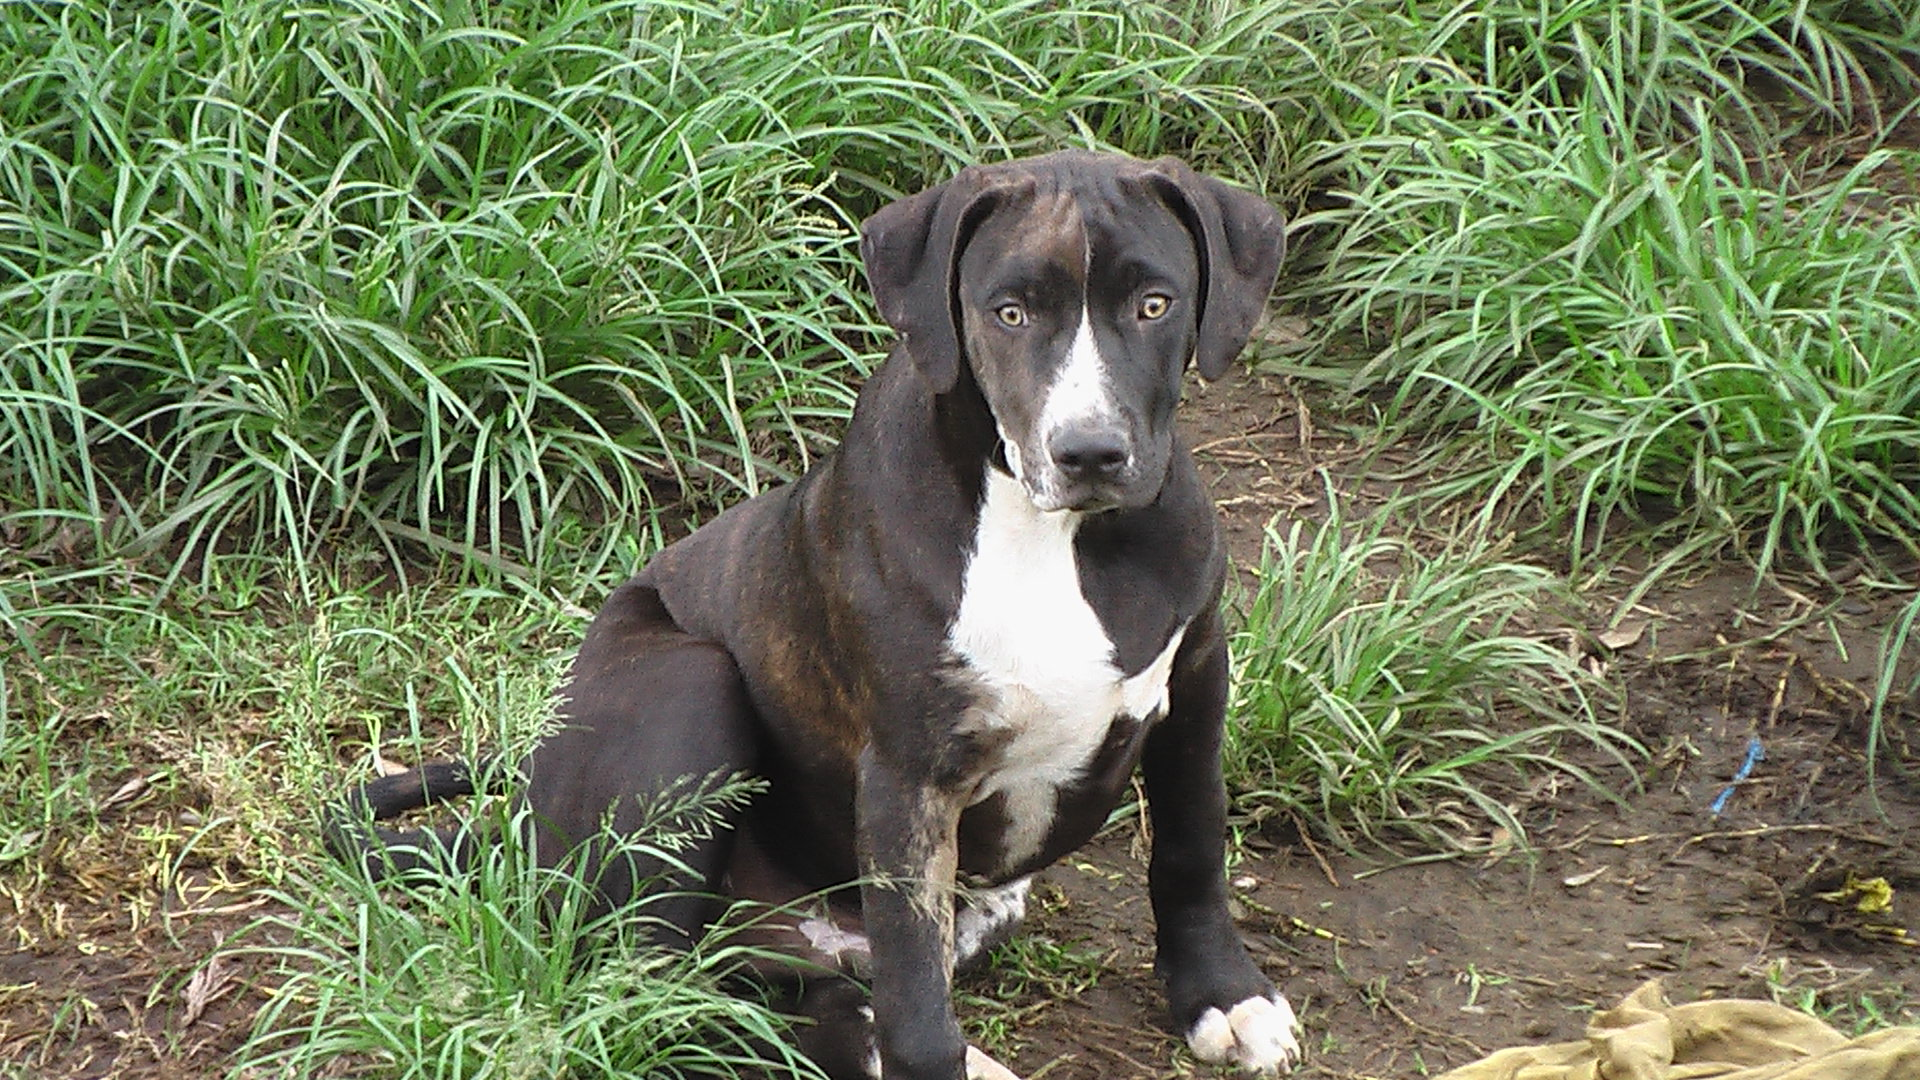 Catahoula Cur Puppies: Catahoula Catahoulacurdogs Breed